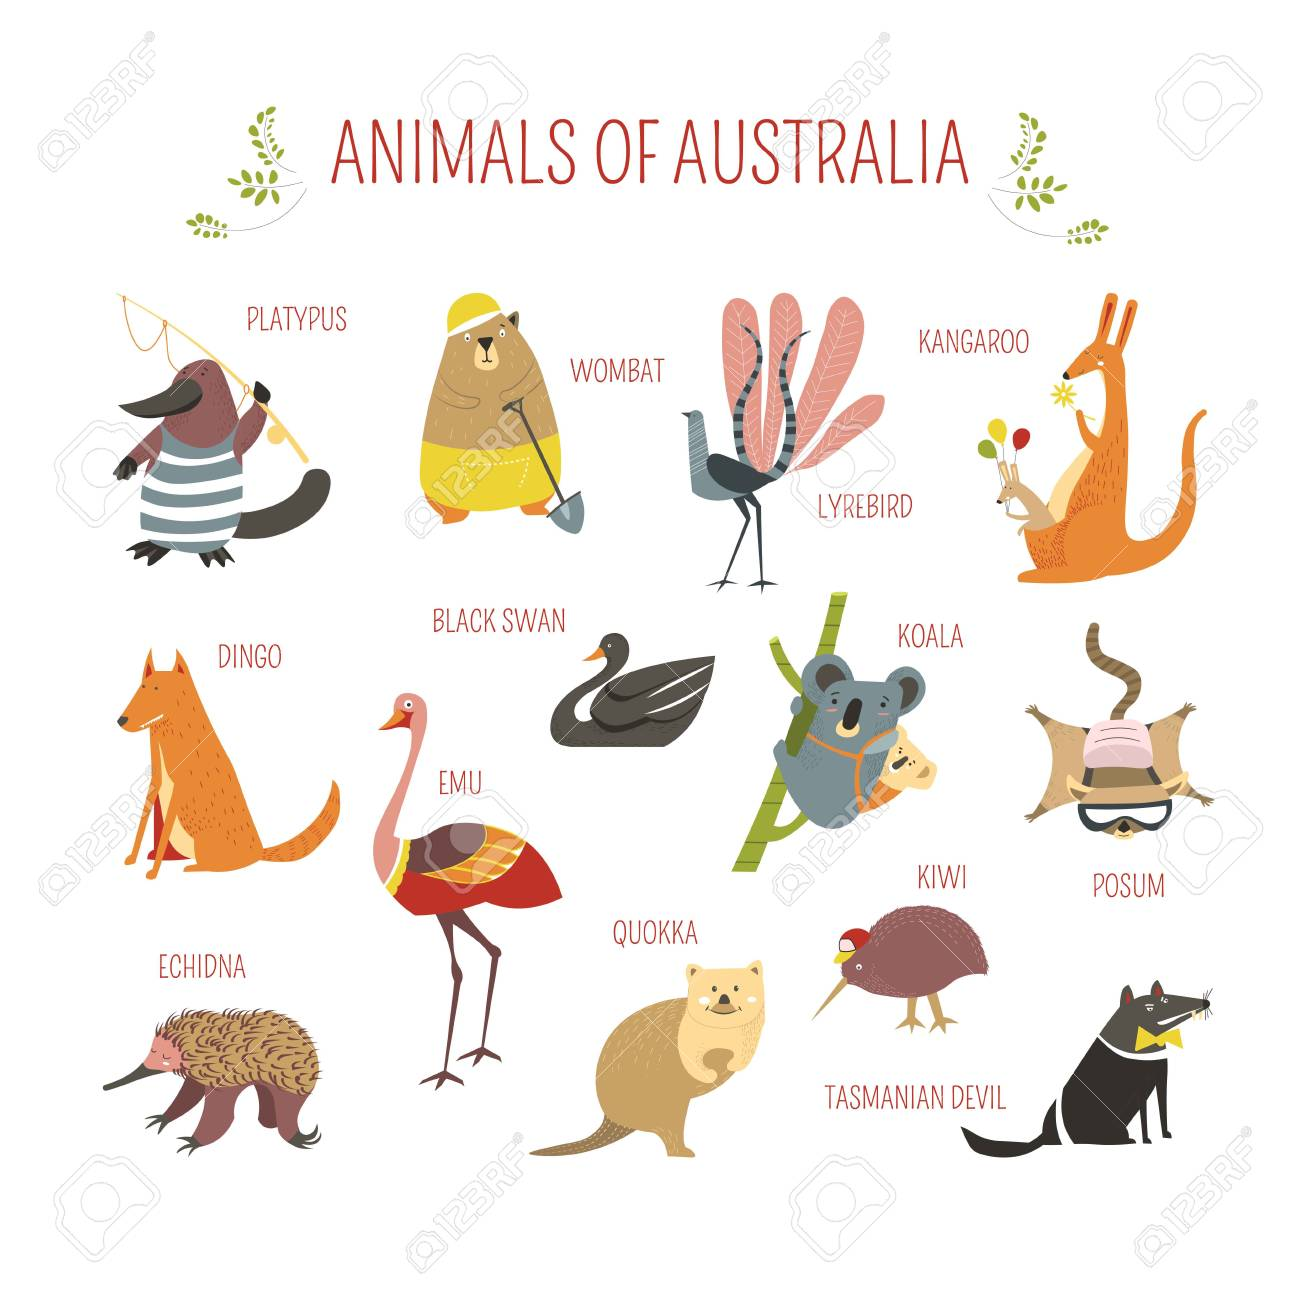 Cartoon Australian Animals And Birds For Kids Design Vector Royalty Free Cliparts Vectors And Stock Illustration Image 104027382